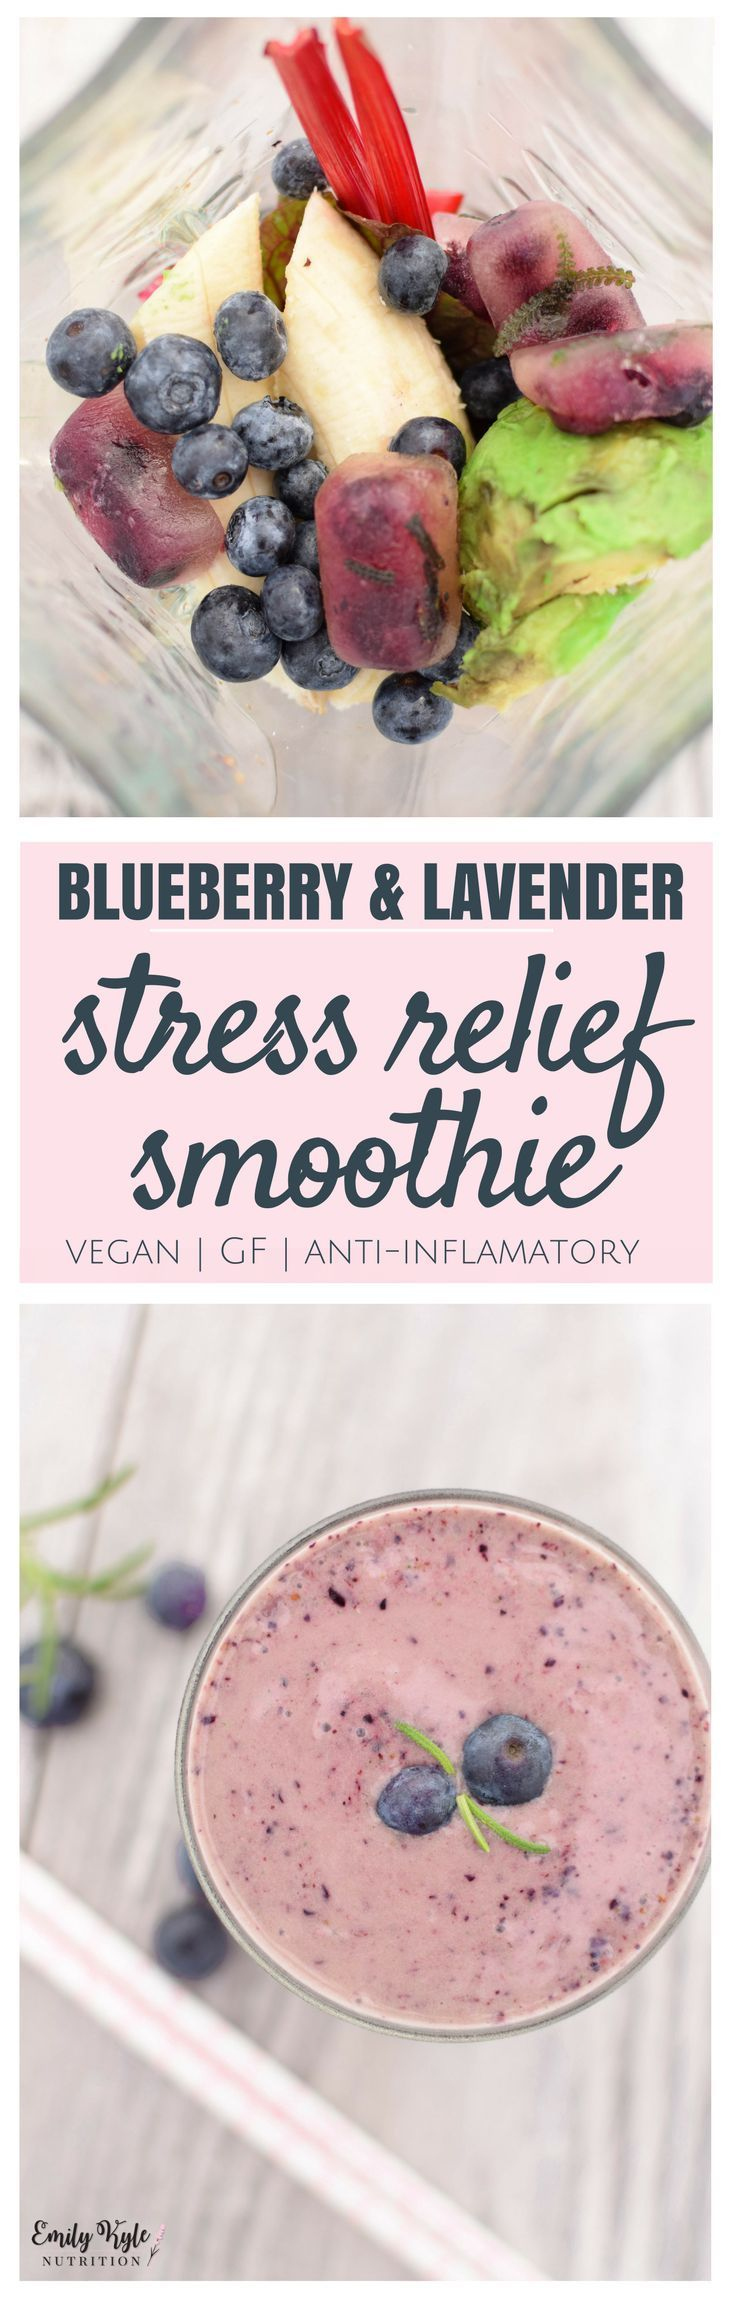 Combined together in this tasty smoothie, these plant based ingredients are the ultimate holistic cure for stress relief. via @EmKyleNutrition